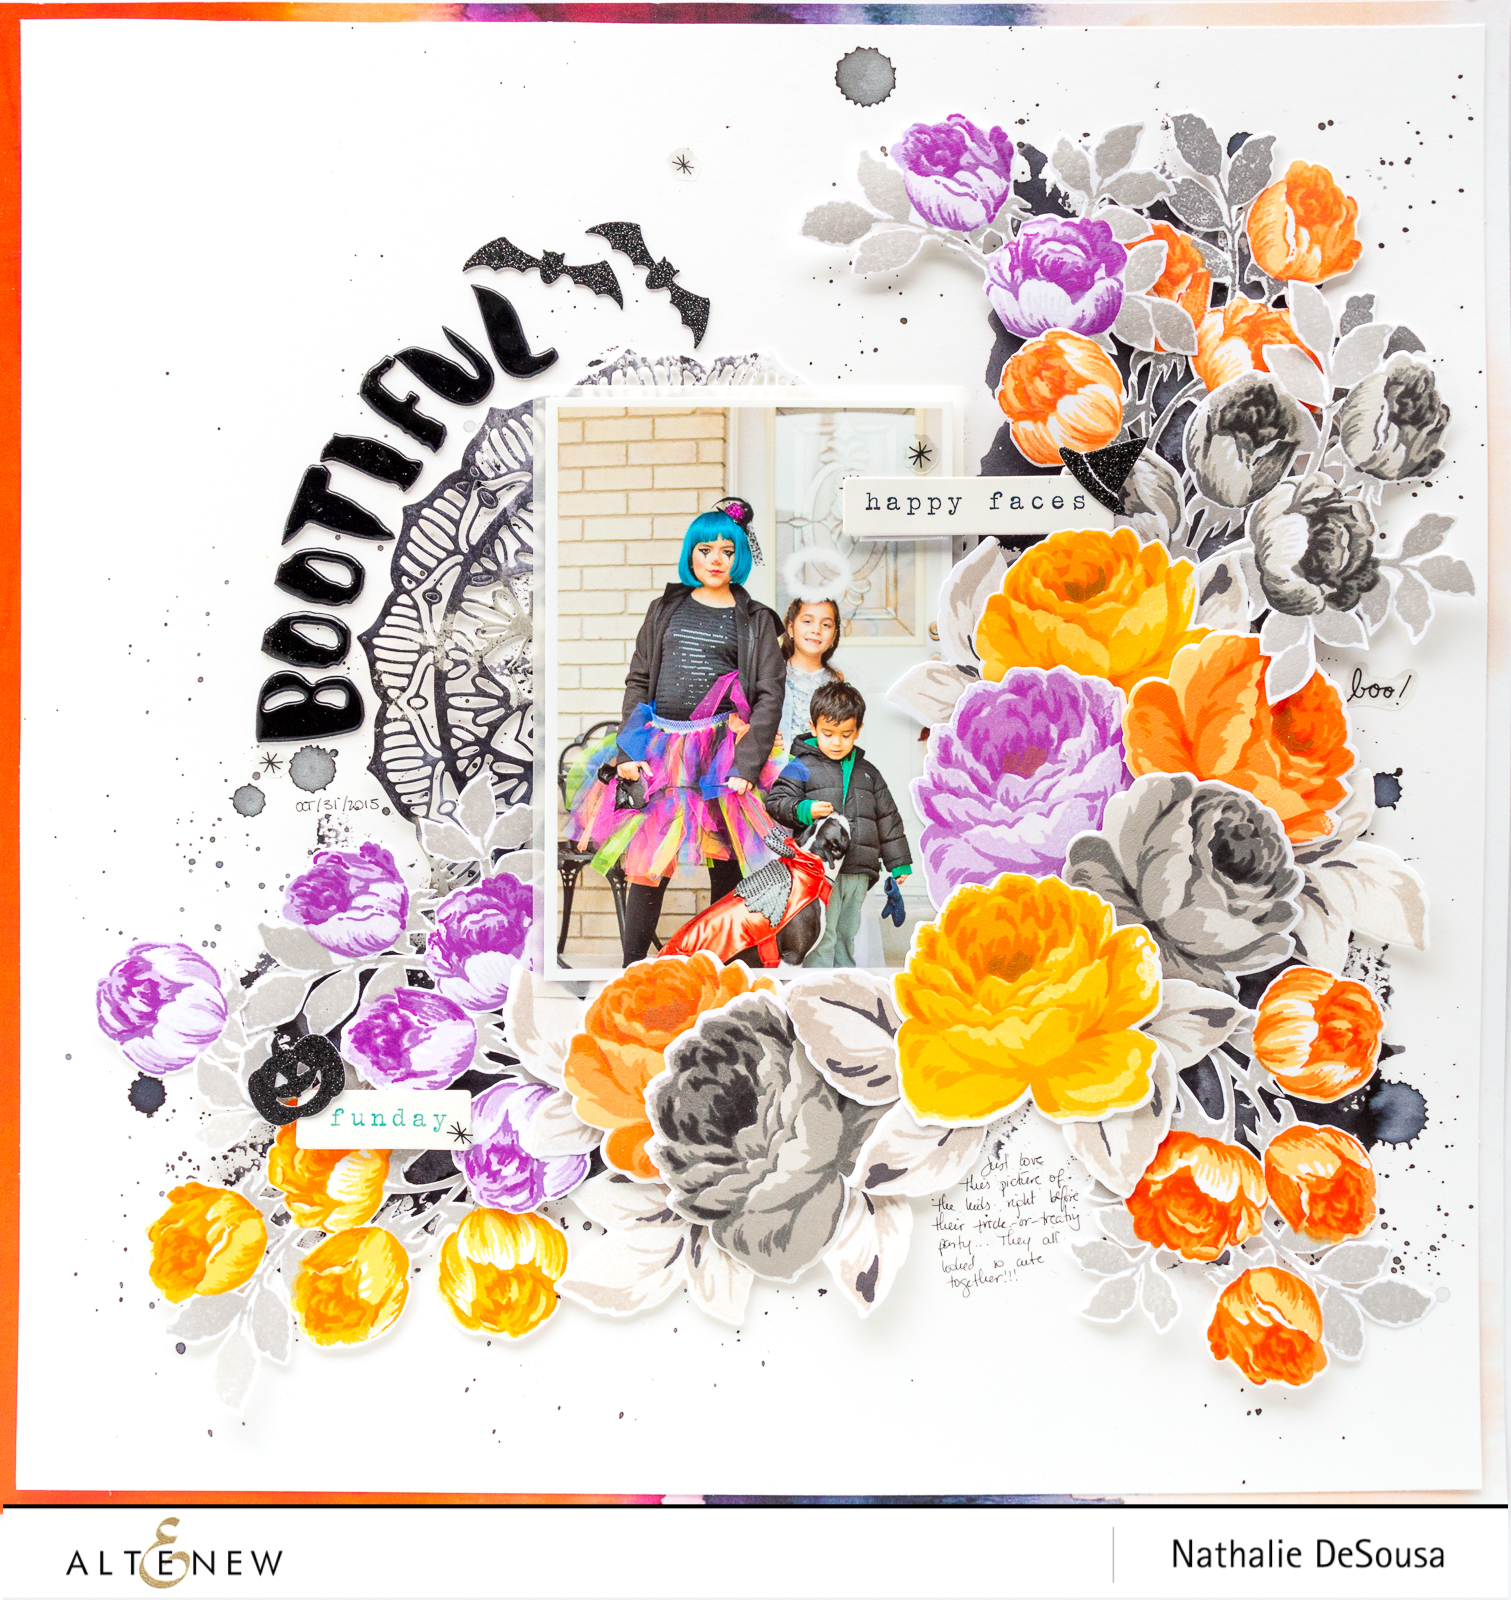 @Altenew- Halloween Layout with Altenew Antique Roses and Sweet Rose Bouquet stamp set by Nathalie DeSousa